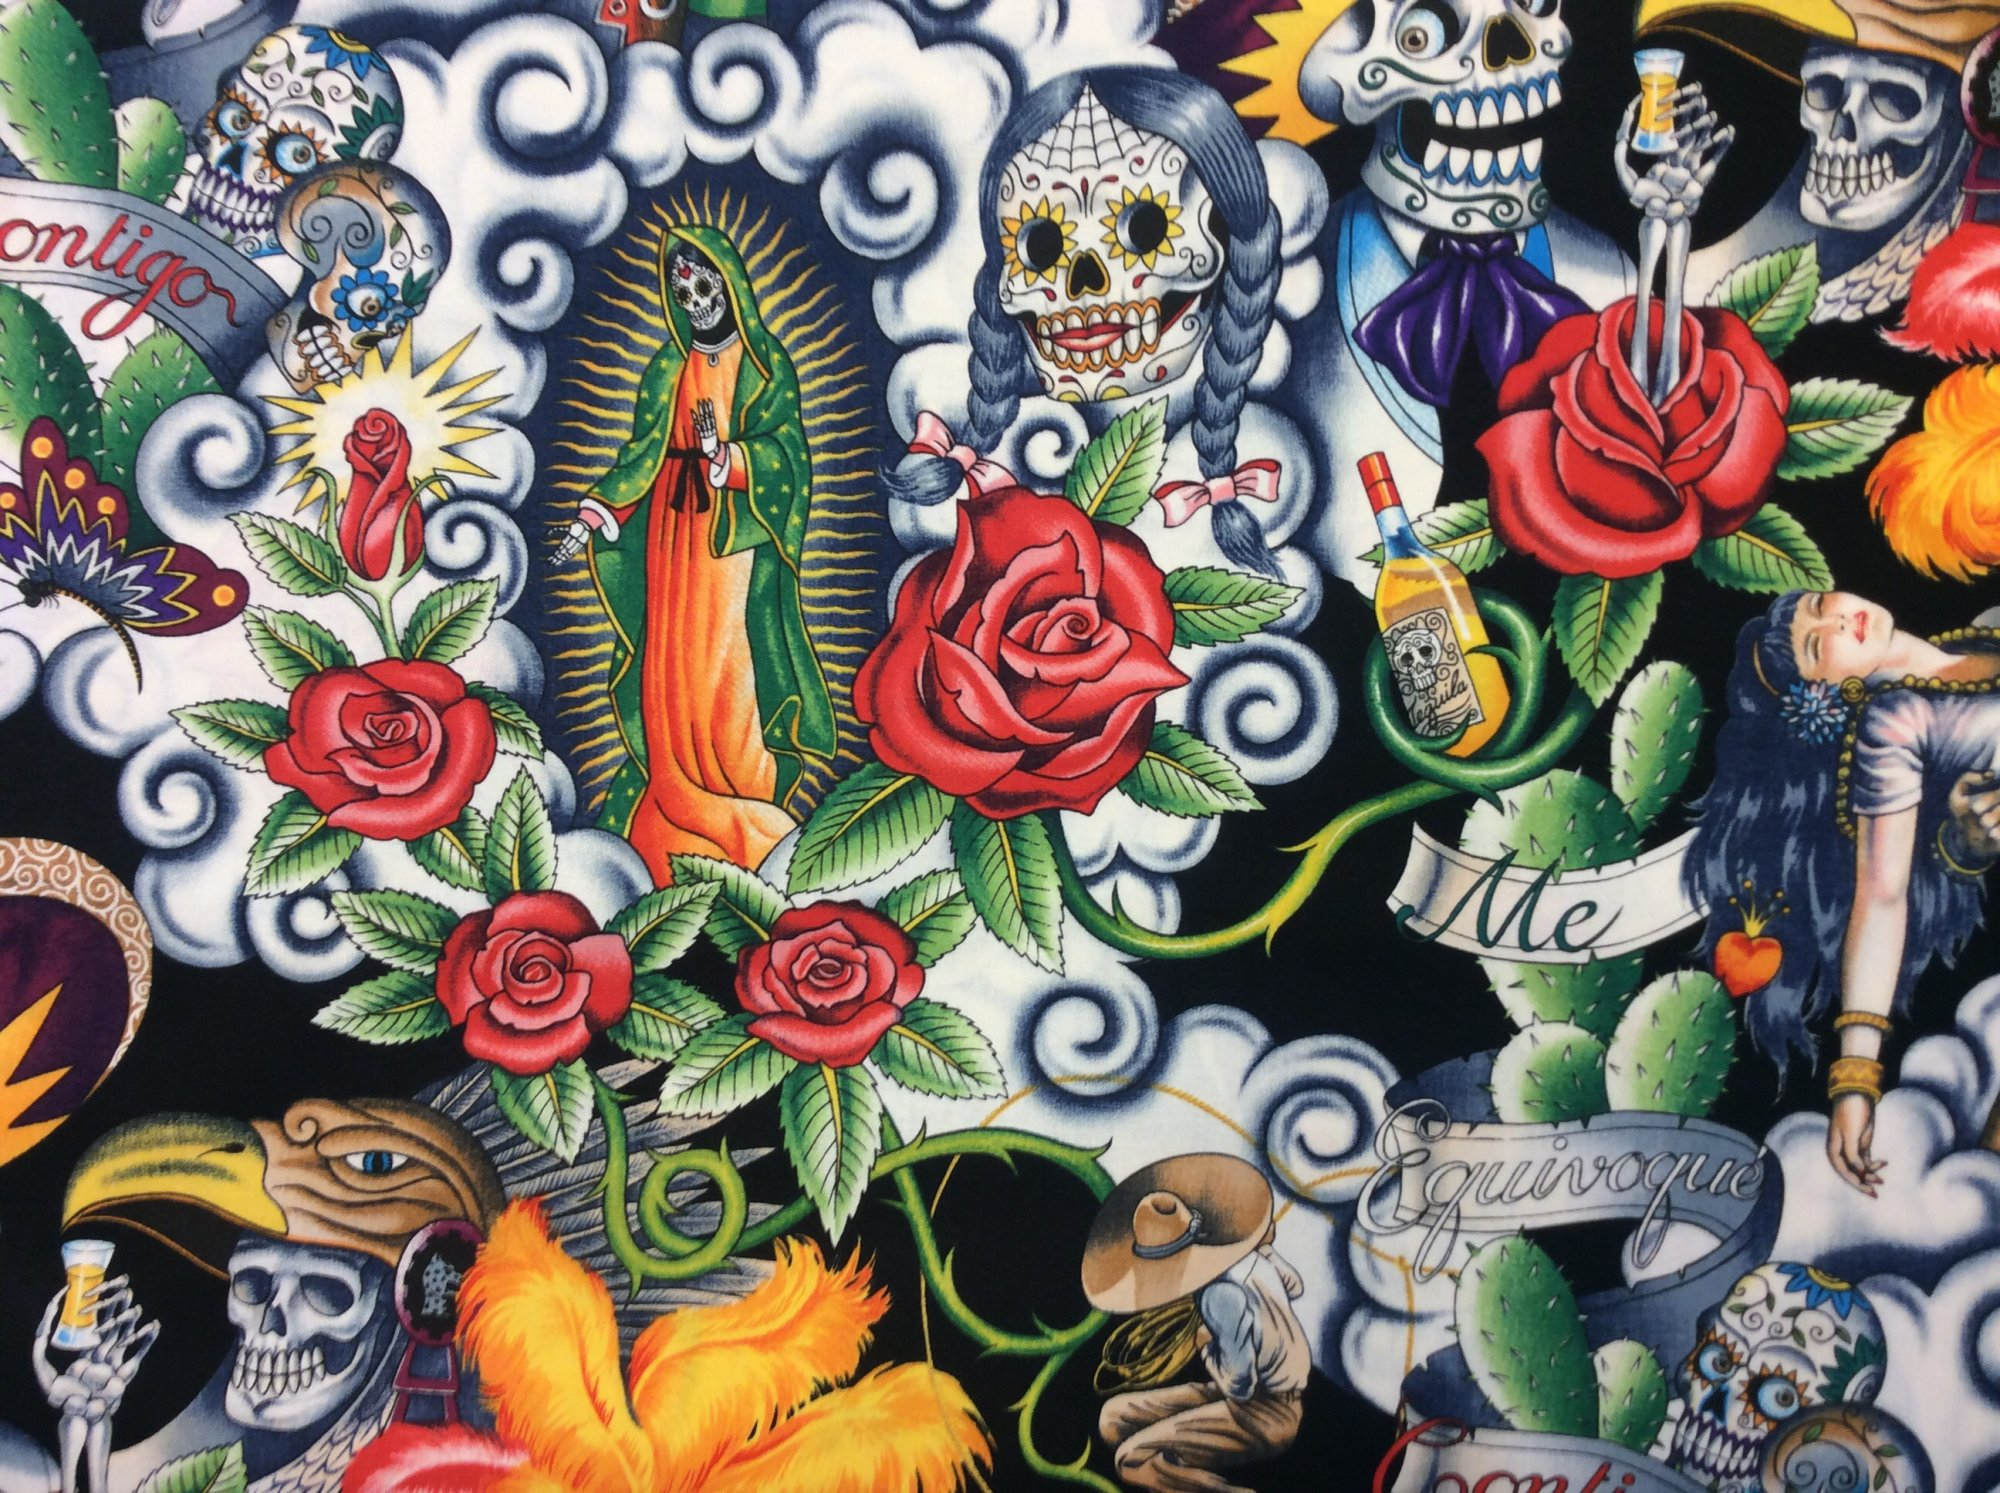 FAT QUARTER! RPFAH132 Contigo Day of the Dead Aztec Warrior Guadalupe Skeleton Rose Skull Mexico Cotton Fabric Quilt Fabric - copy